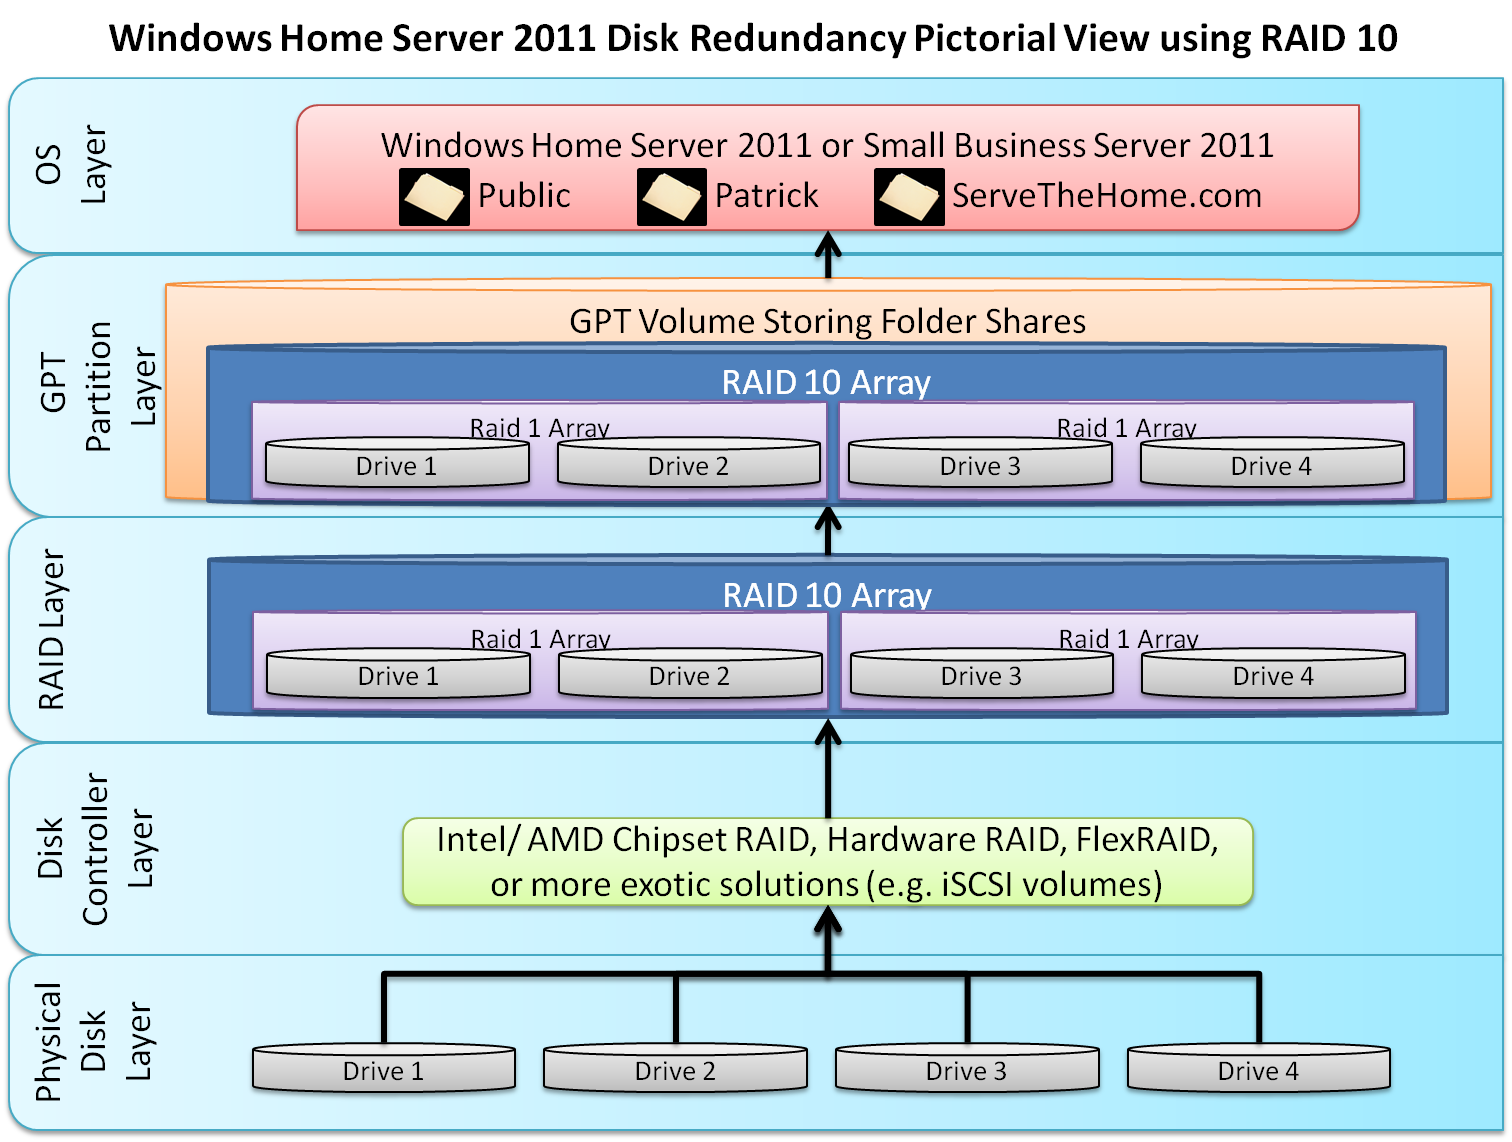 Windows Home Server 2011 and Small Business Server 2011 using GPT and